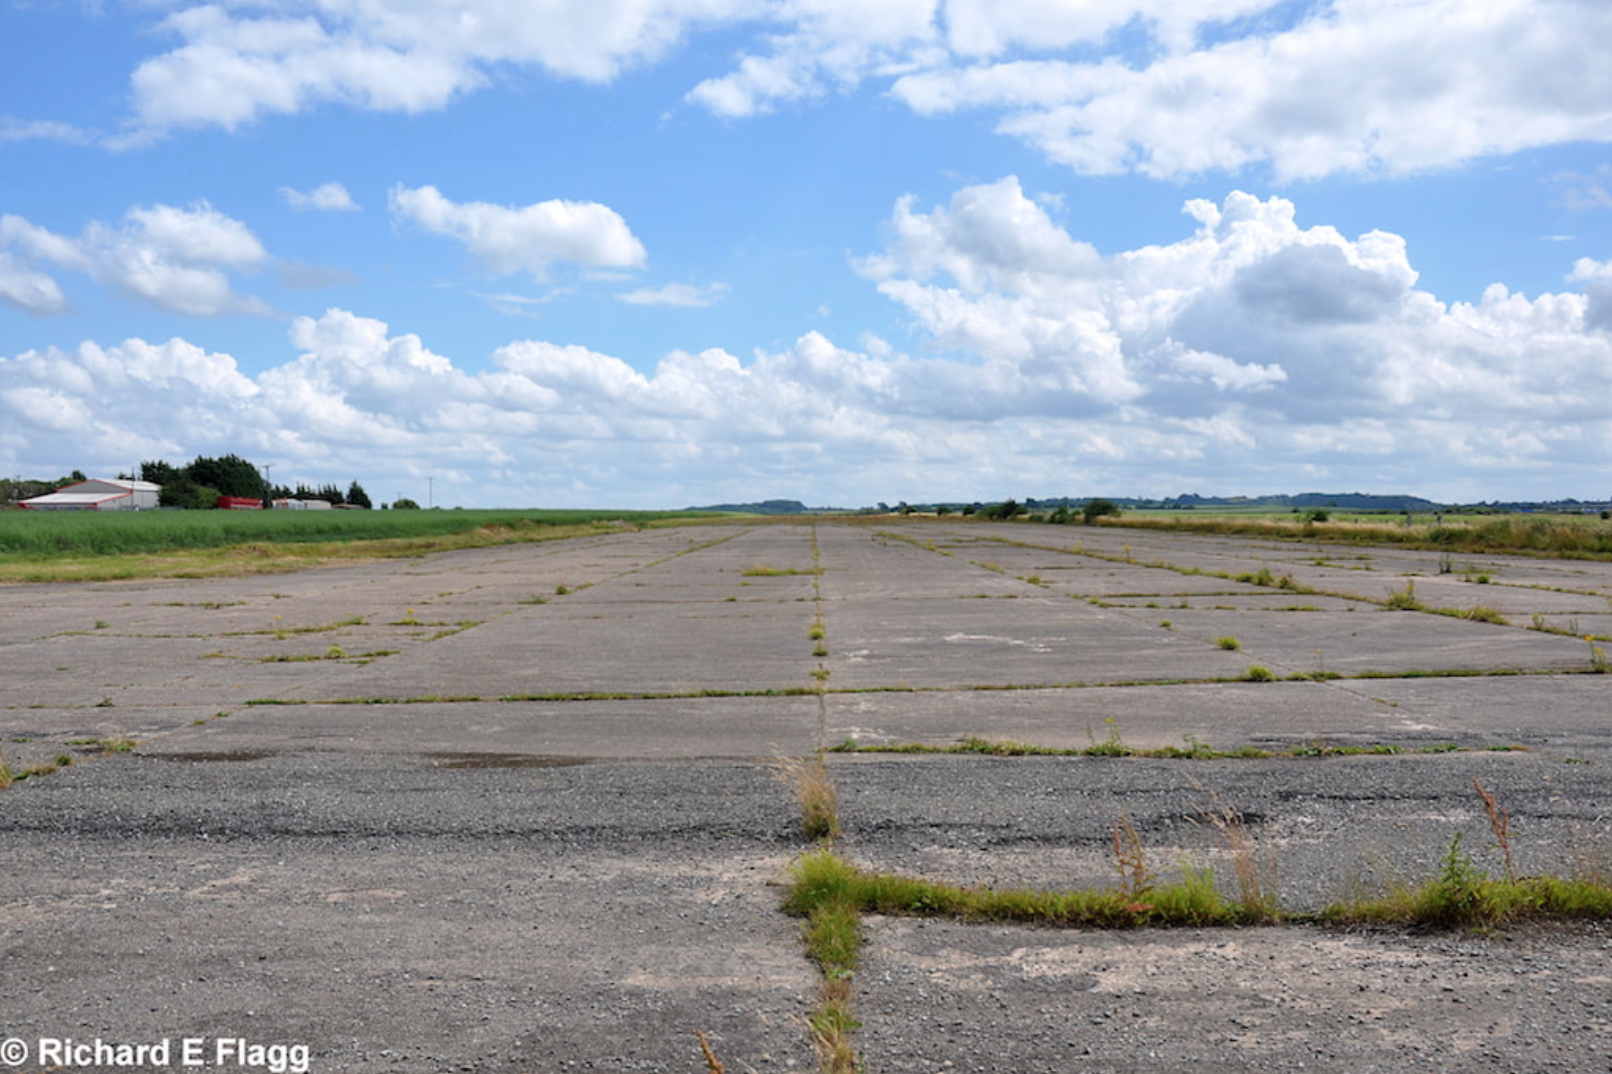 002Runway 15:33. Looking south east from the runway 15 threshold - 28 July 2013.png